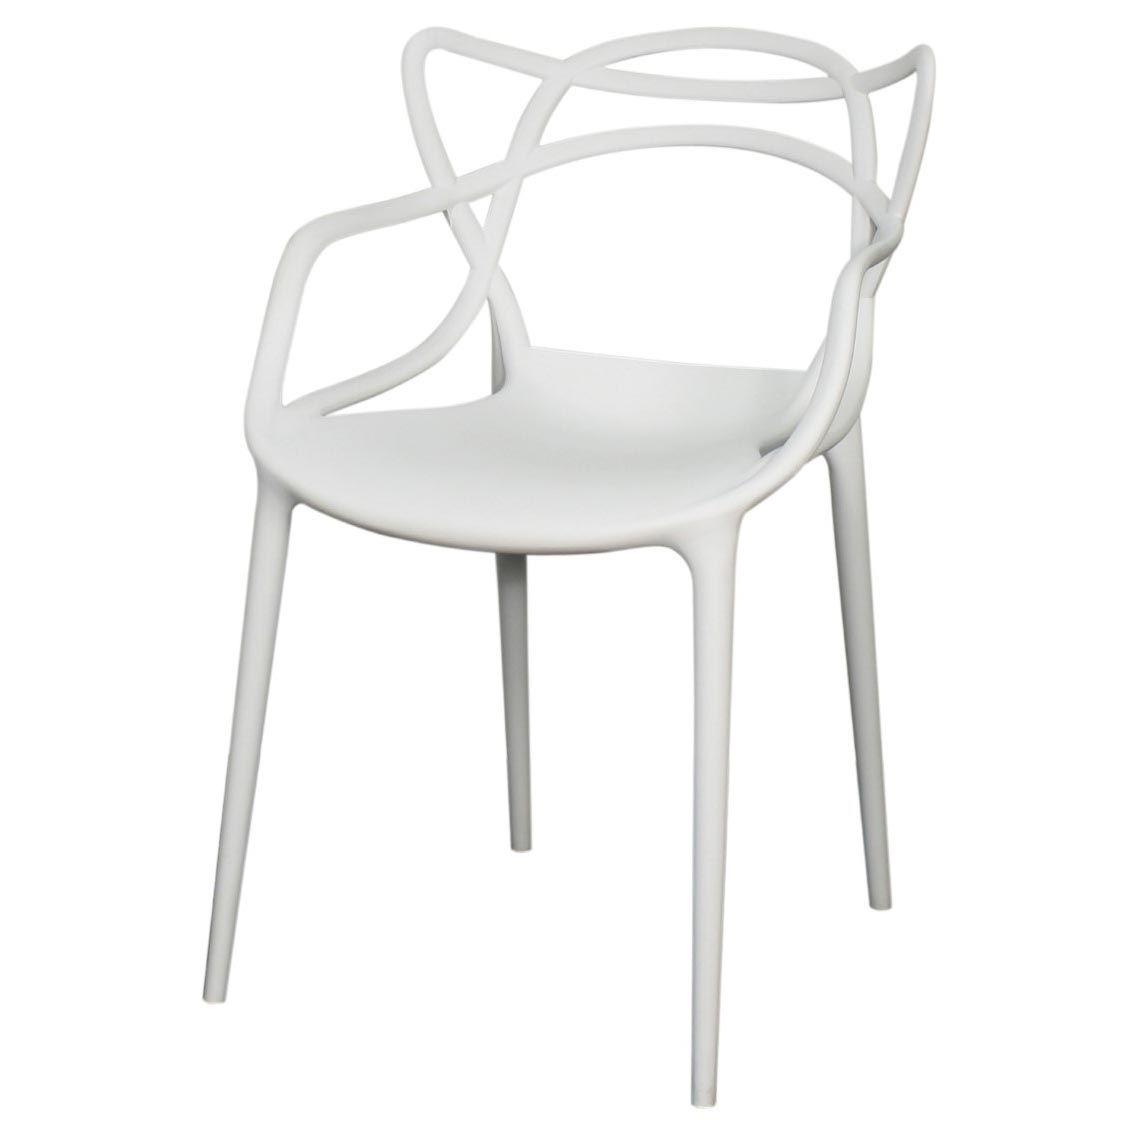 Russell molded pp arm chair whitew erica zipp pinterest